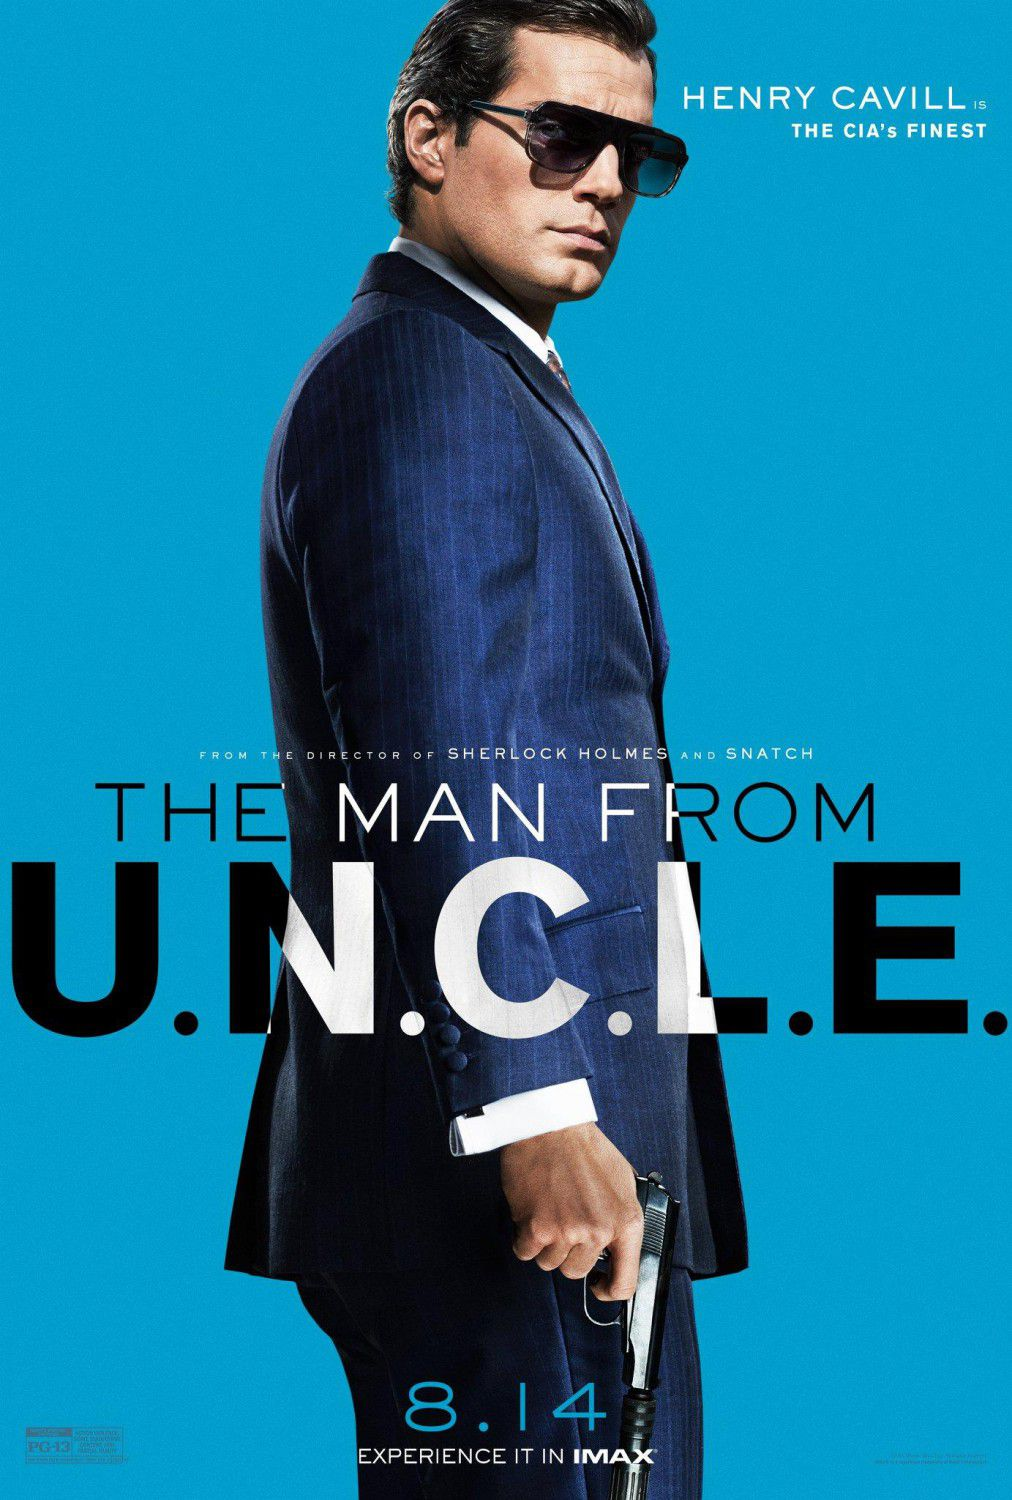 U.N.C.L.E. - Man from UNCLE -  Henry Cavill